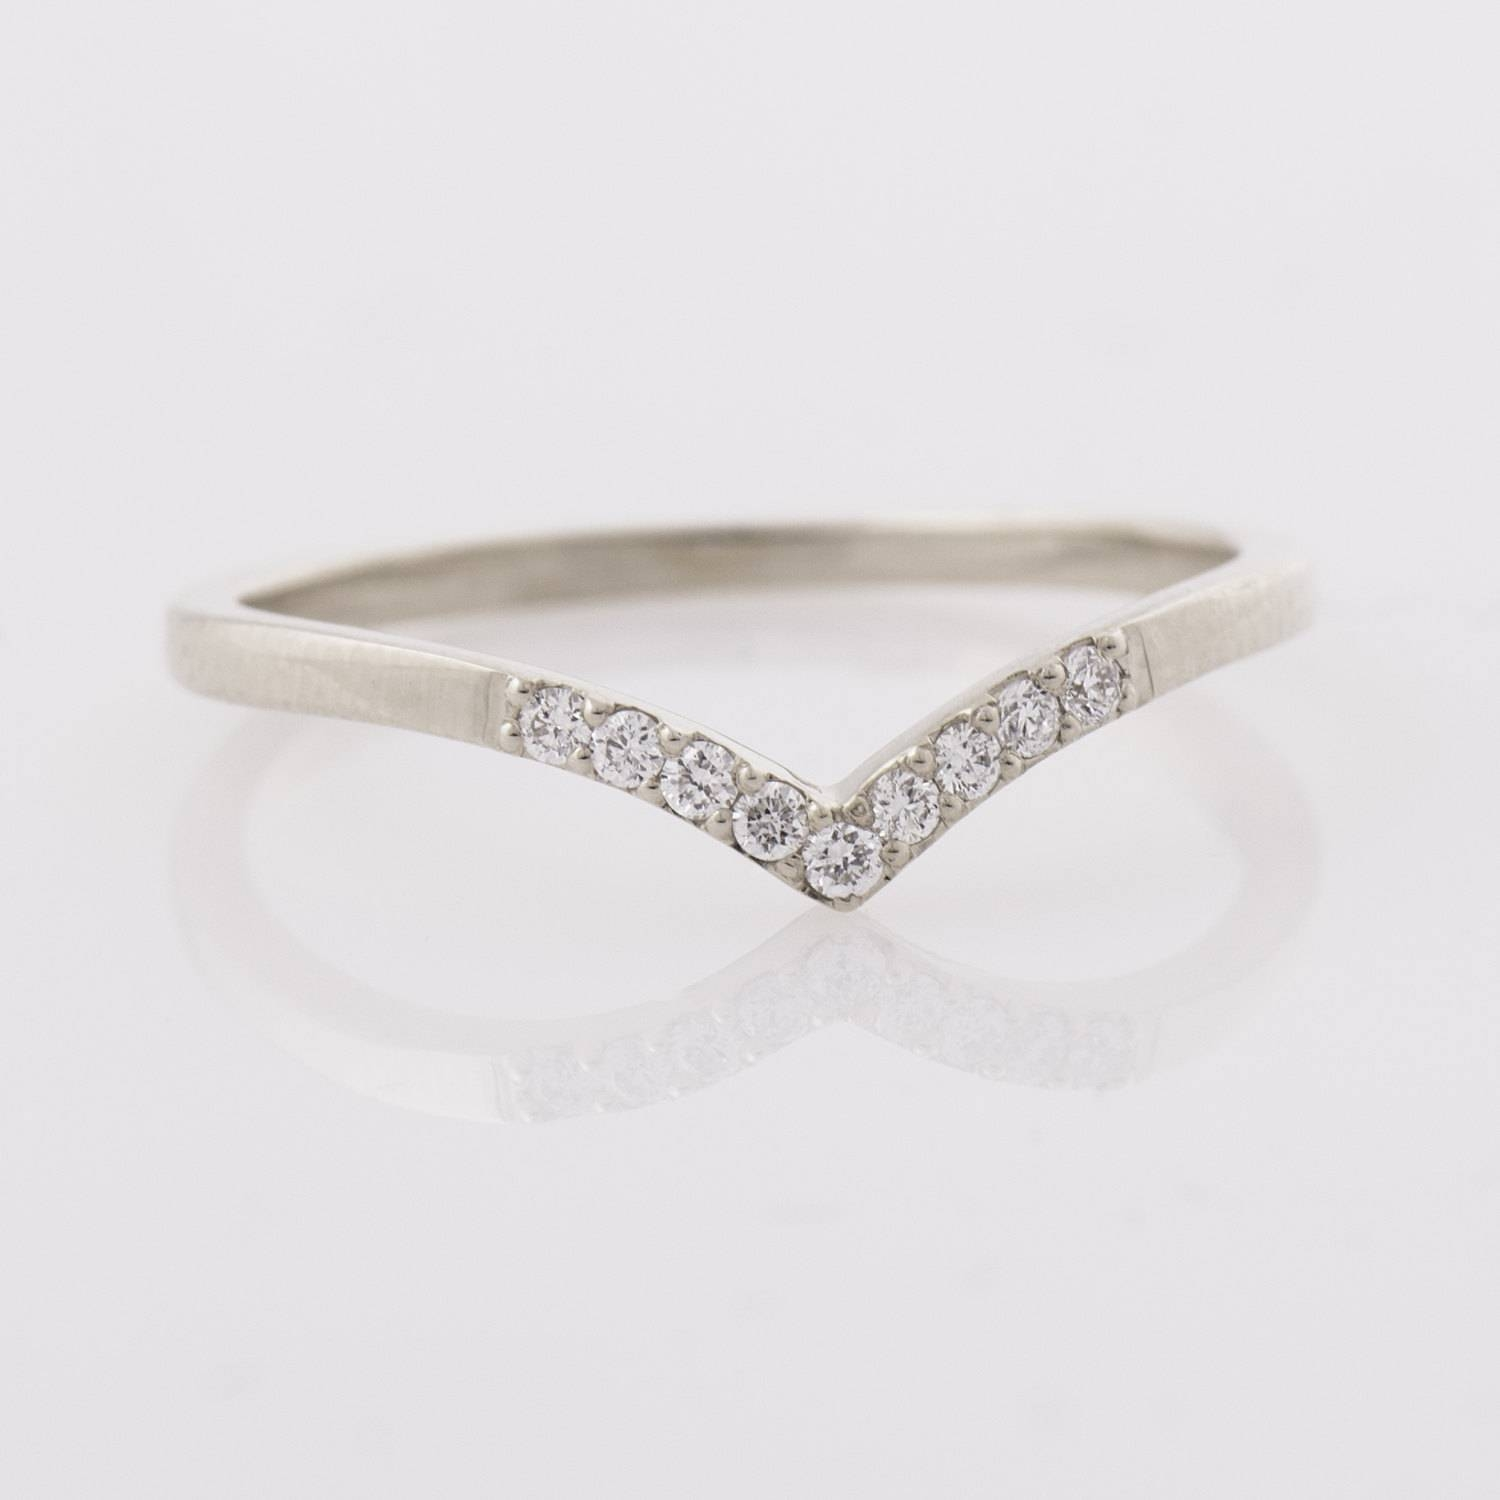 Chevron Ring 14k White Gold Diamonds Ring V Shaped Ring With Regard To Skinny Diamond Wedding Bands (View 10 of 15)